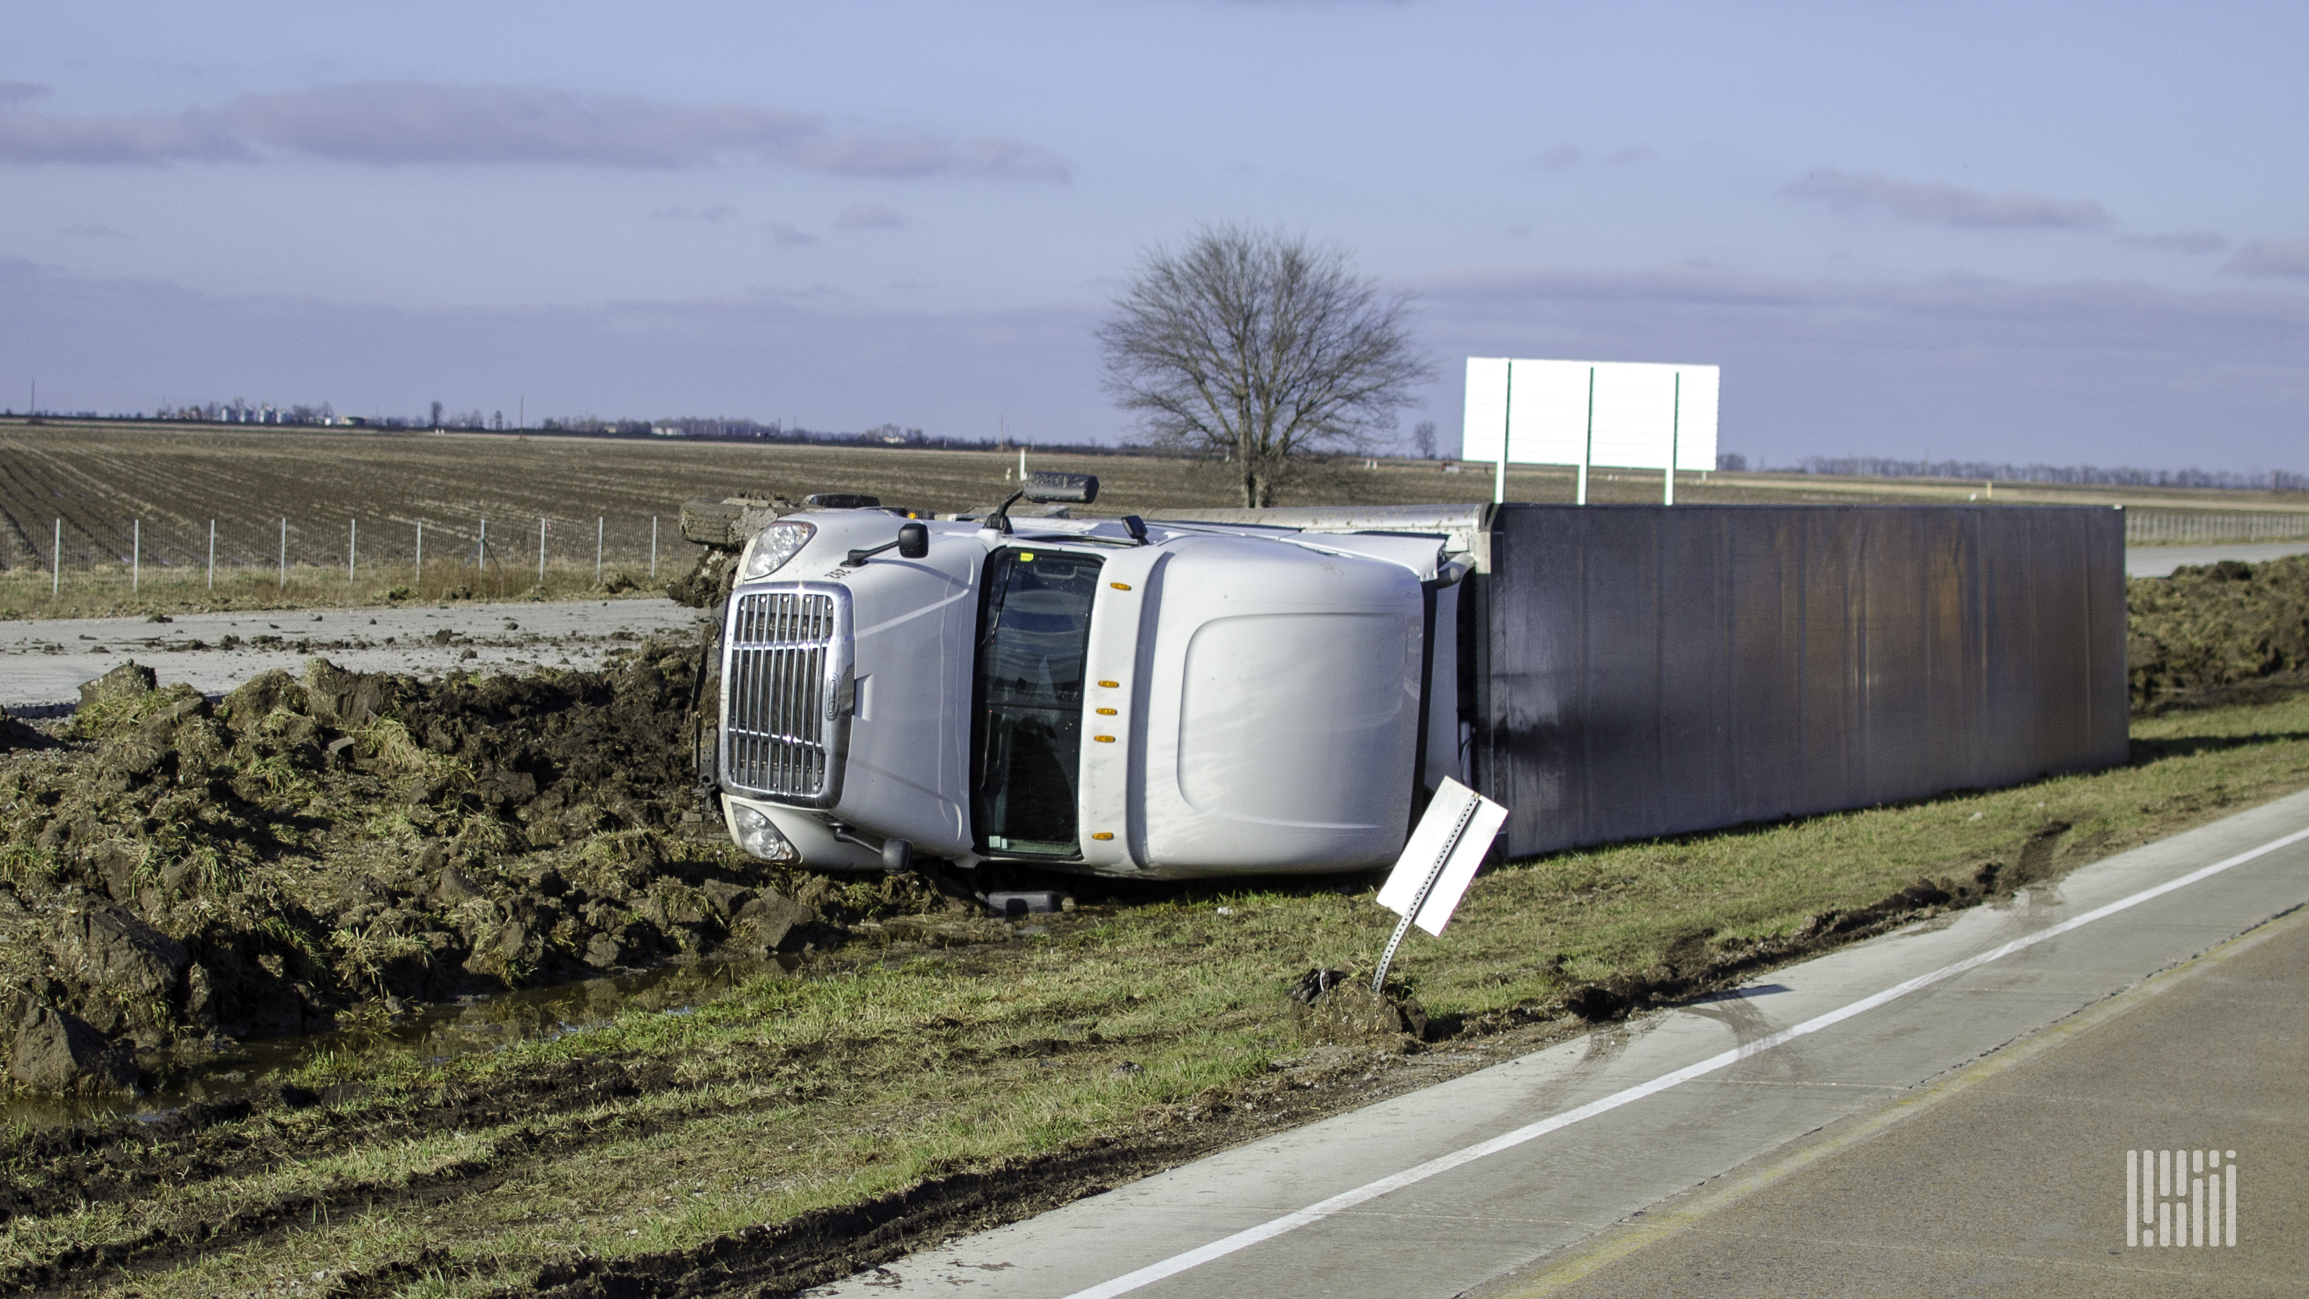 Tractor-trailer flipped on the side of a road.